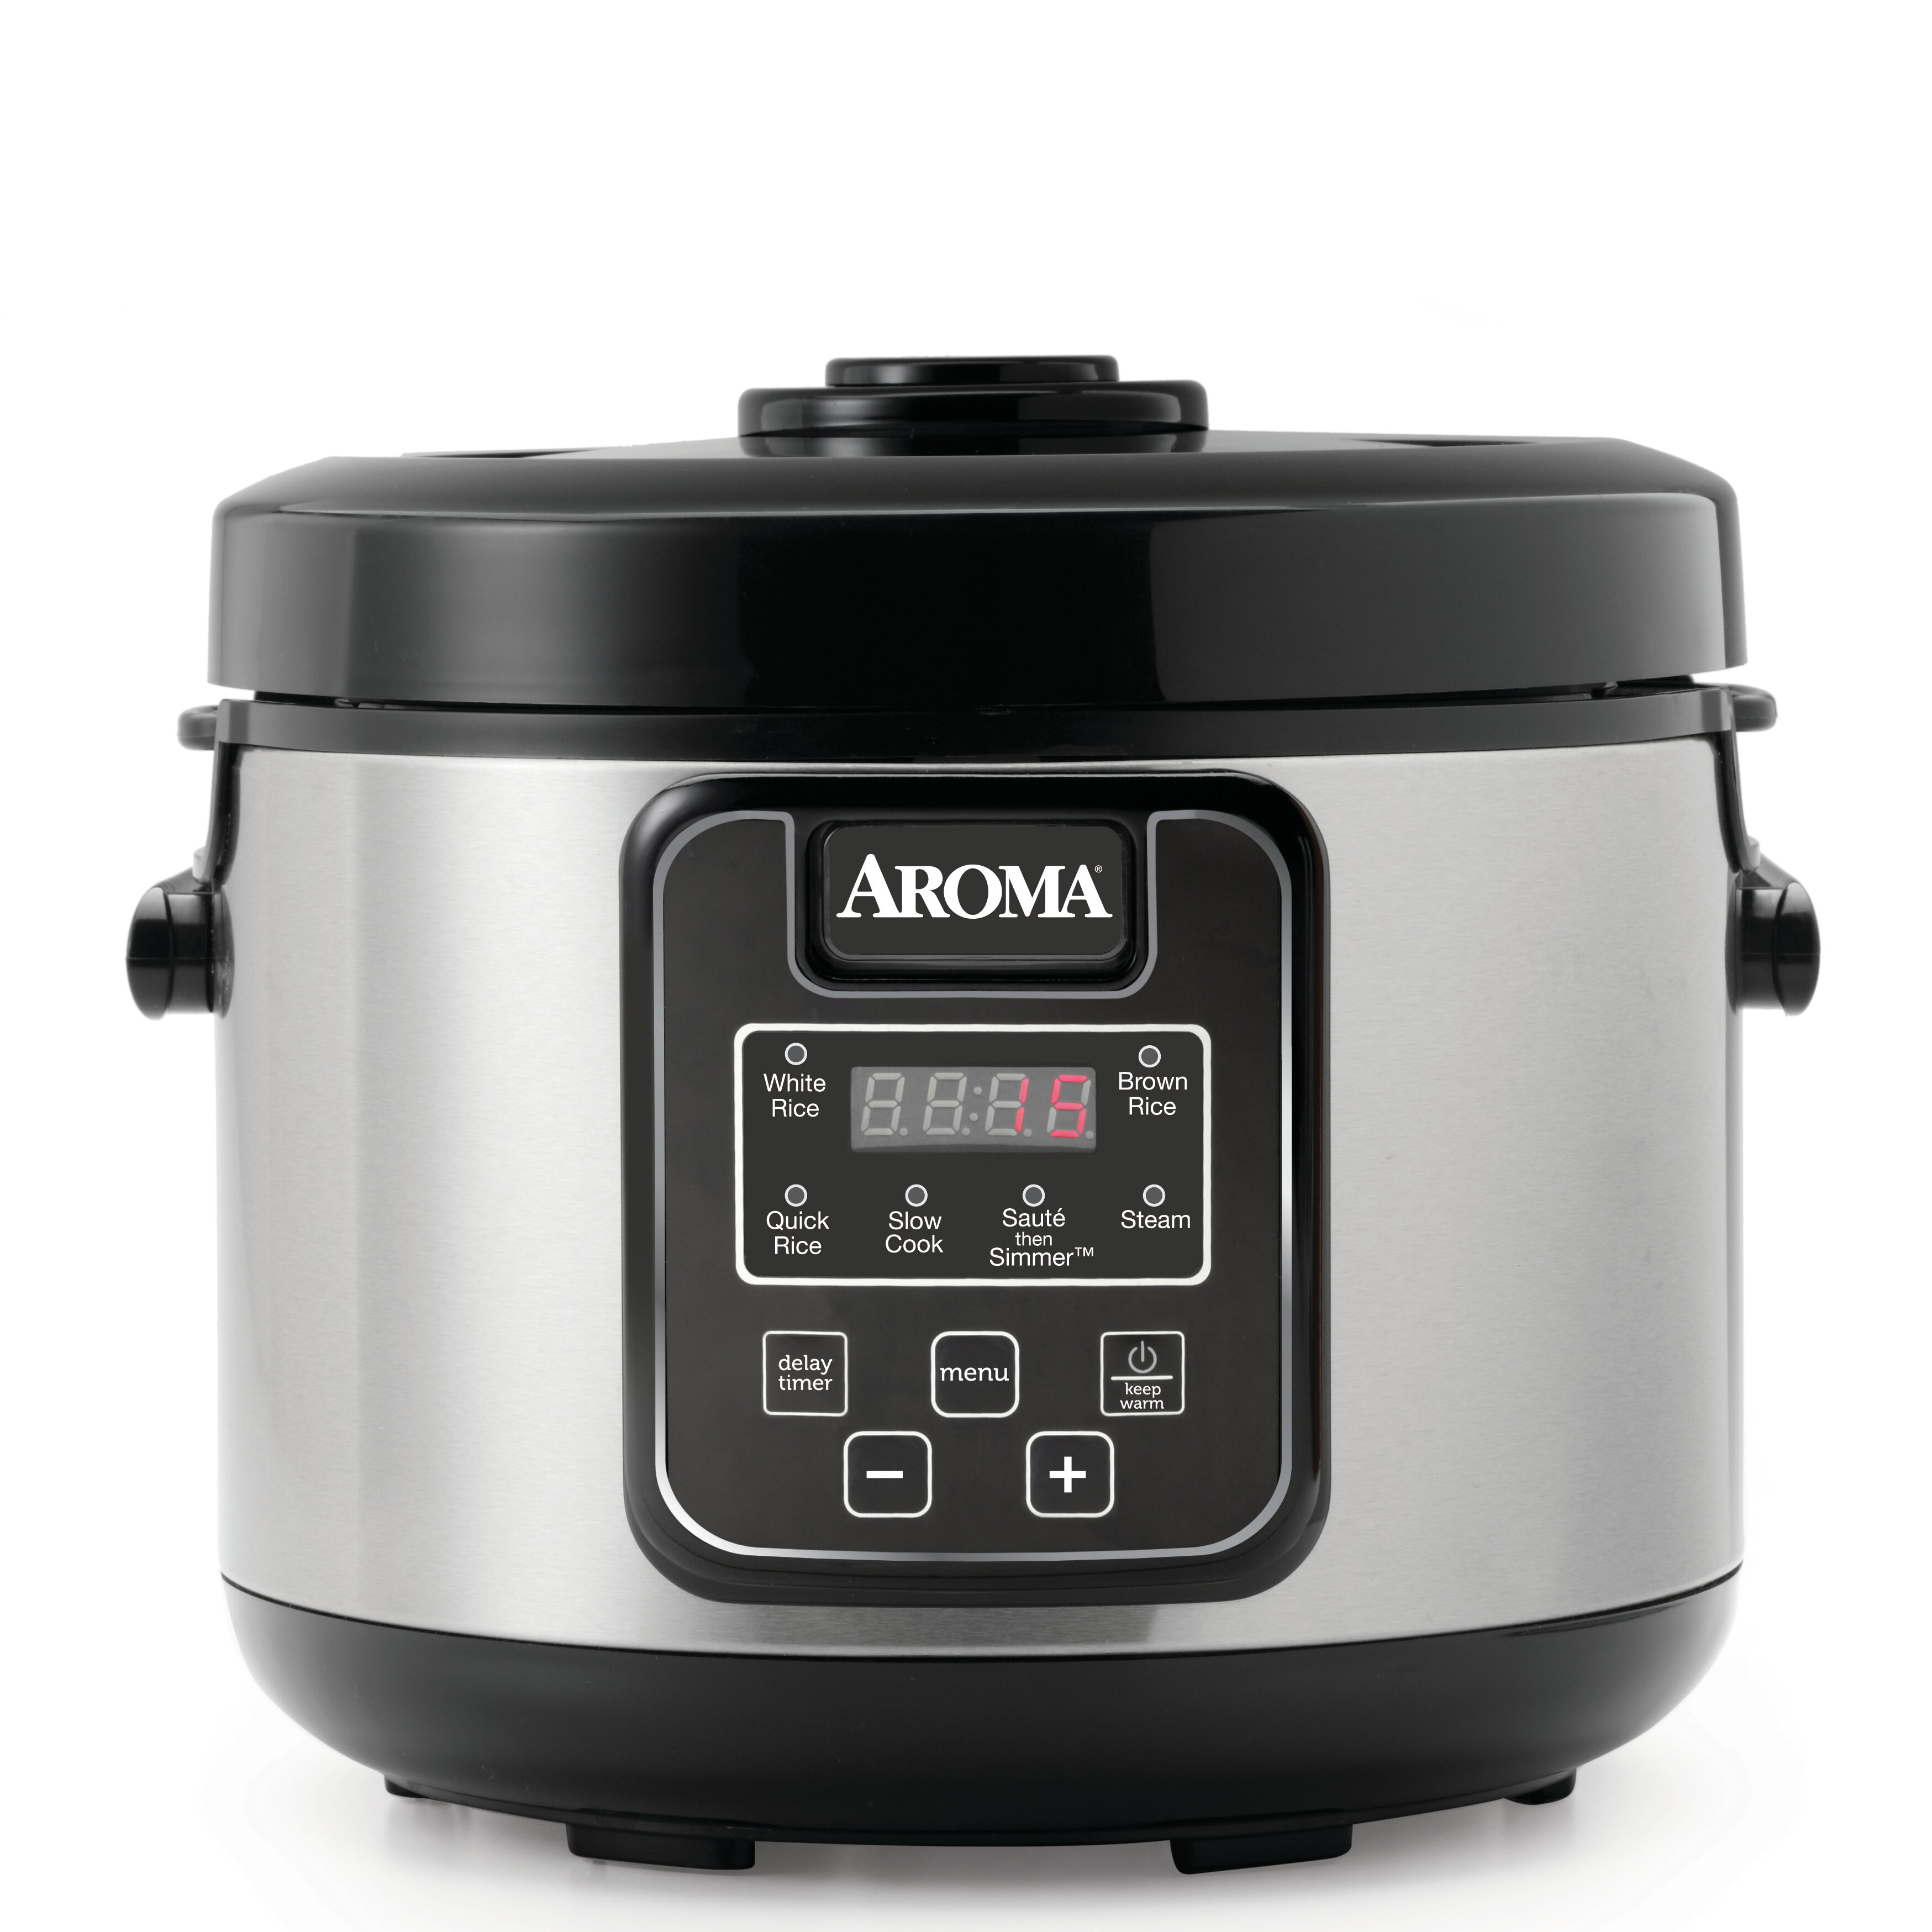 Aroma ARC-914SBD rice cooker | Best Aroma Rice Cookers